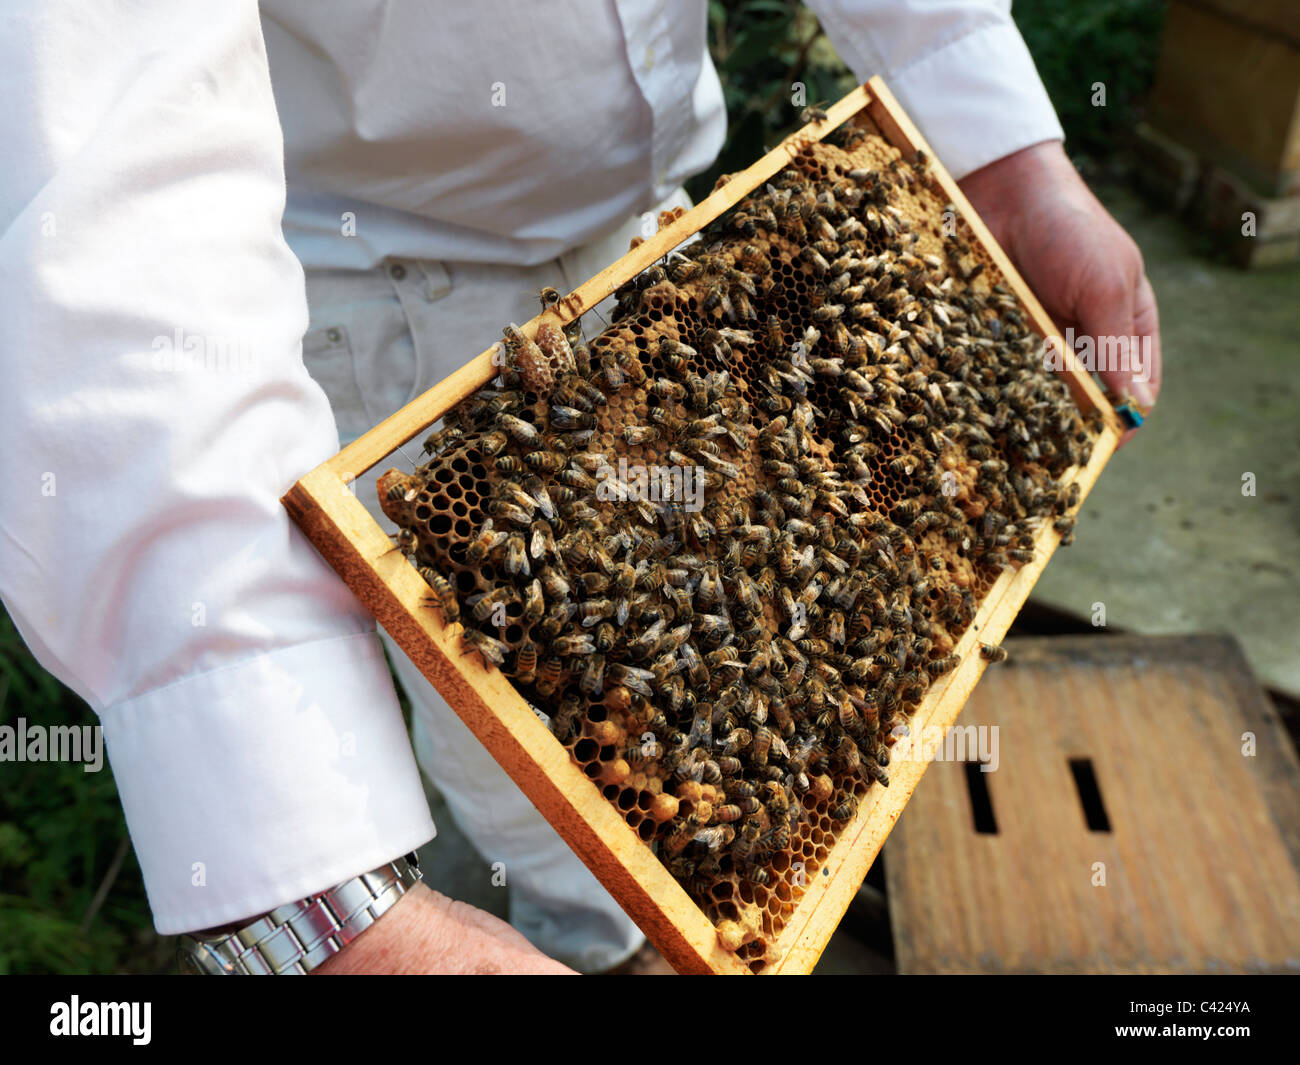 Frame From A Bee Hive Containing Brood And Queen Cells With Bee Entering Queen Cell - Stock Image